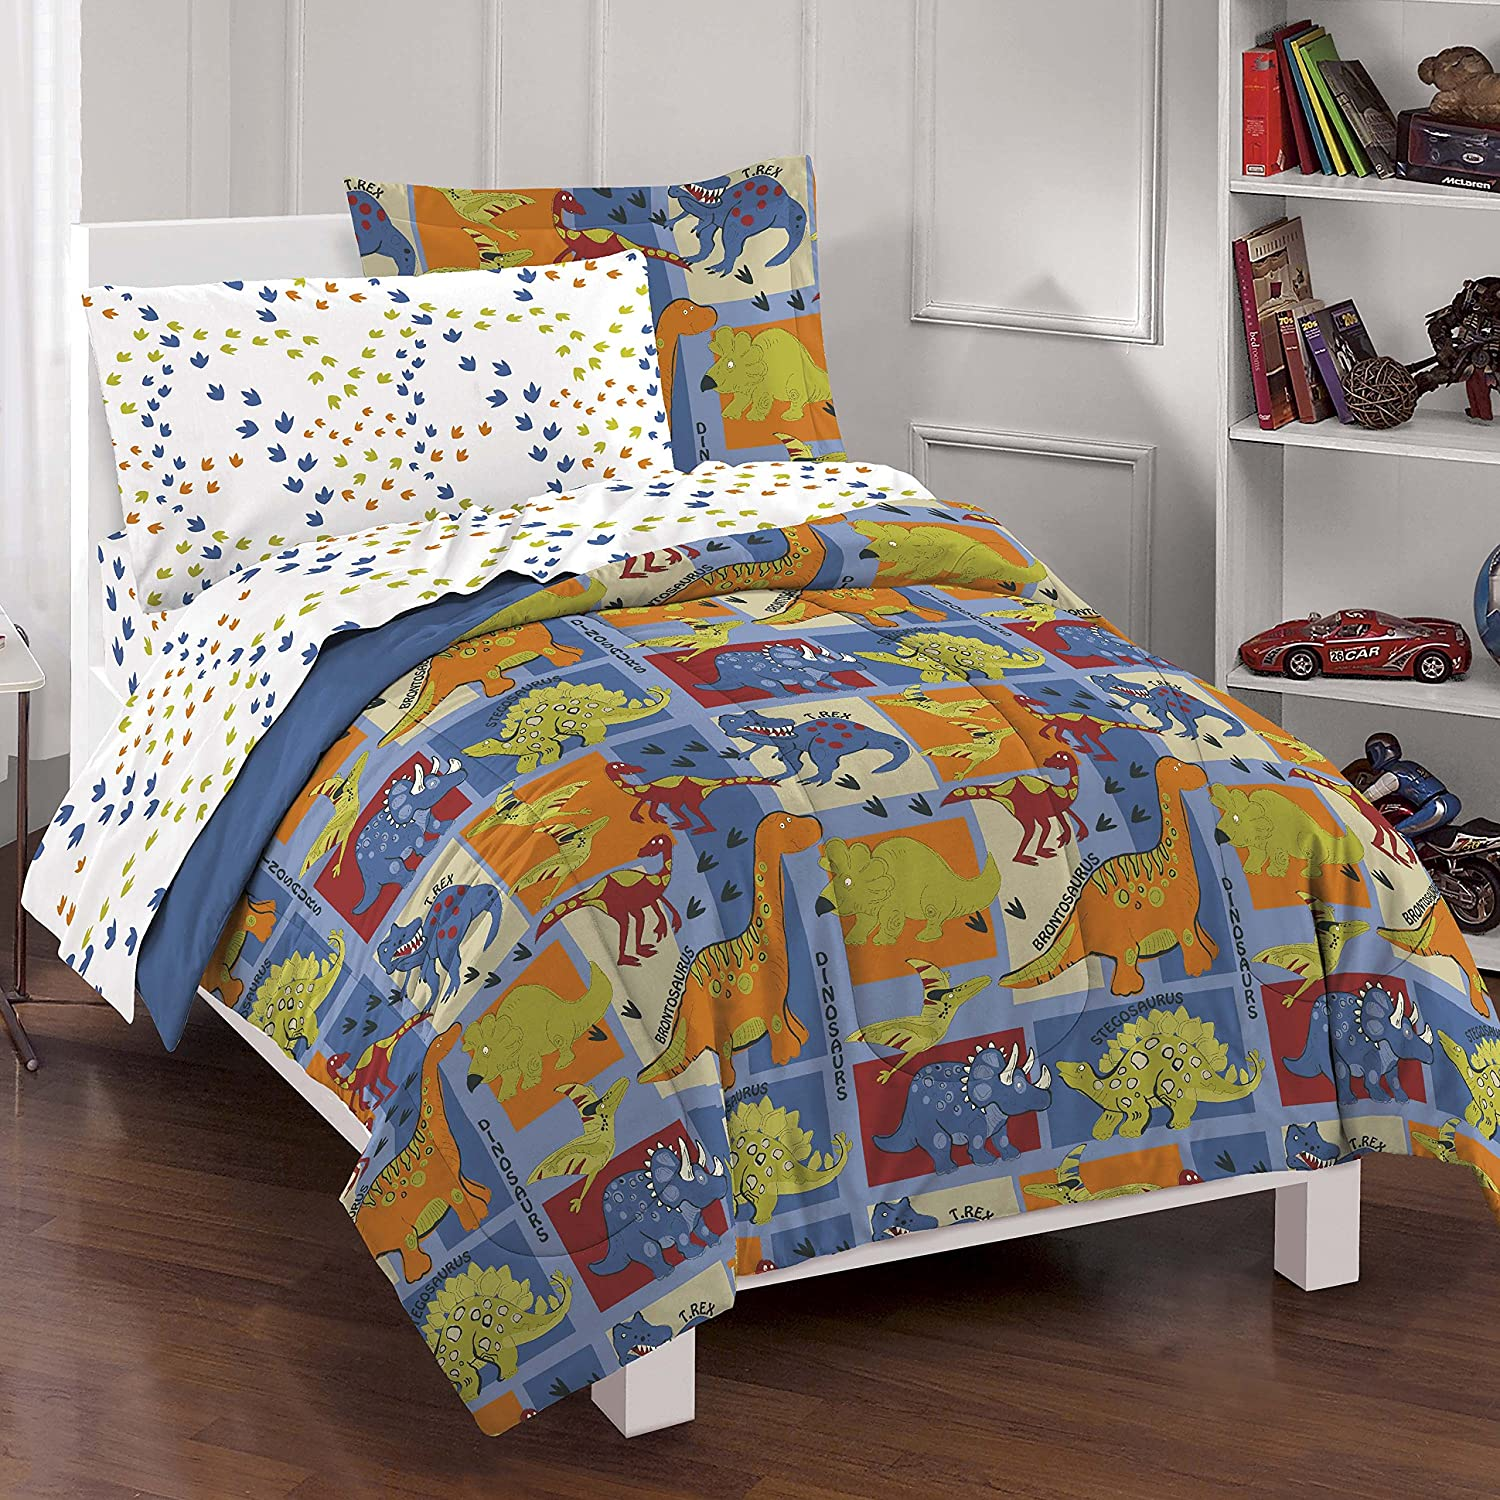 Amazon.com Dream Factory Dinosaur Blocks Ultra Soft Microfiber Boys Comforter Set Blue Twin Home u0026 Kitchen & Amazon.com: Dream Factory Dinosaur Blocks Ultra Soft Microfiber ...